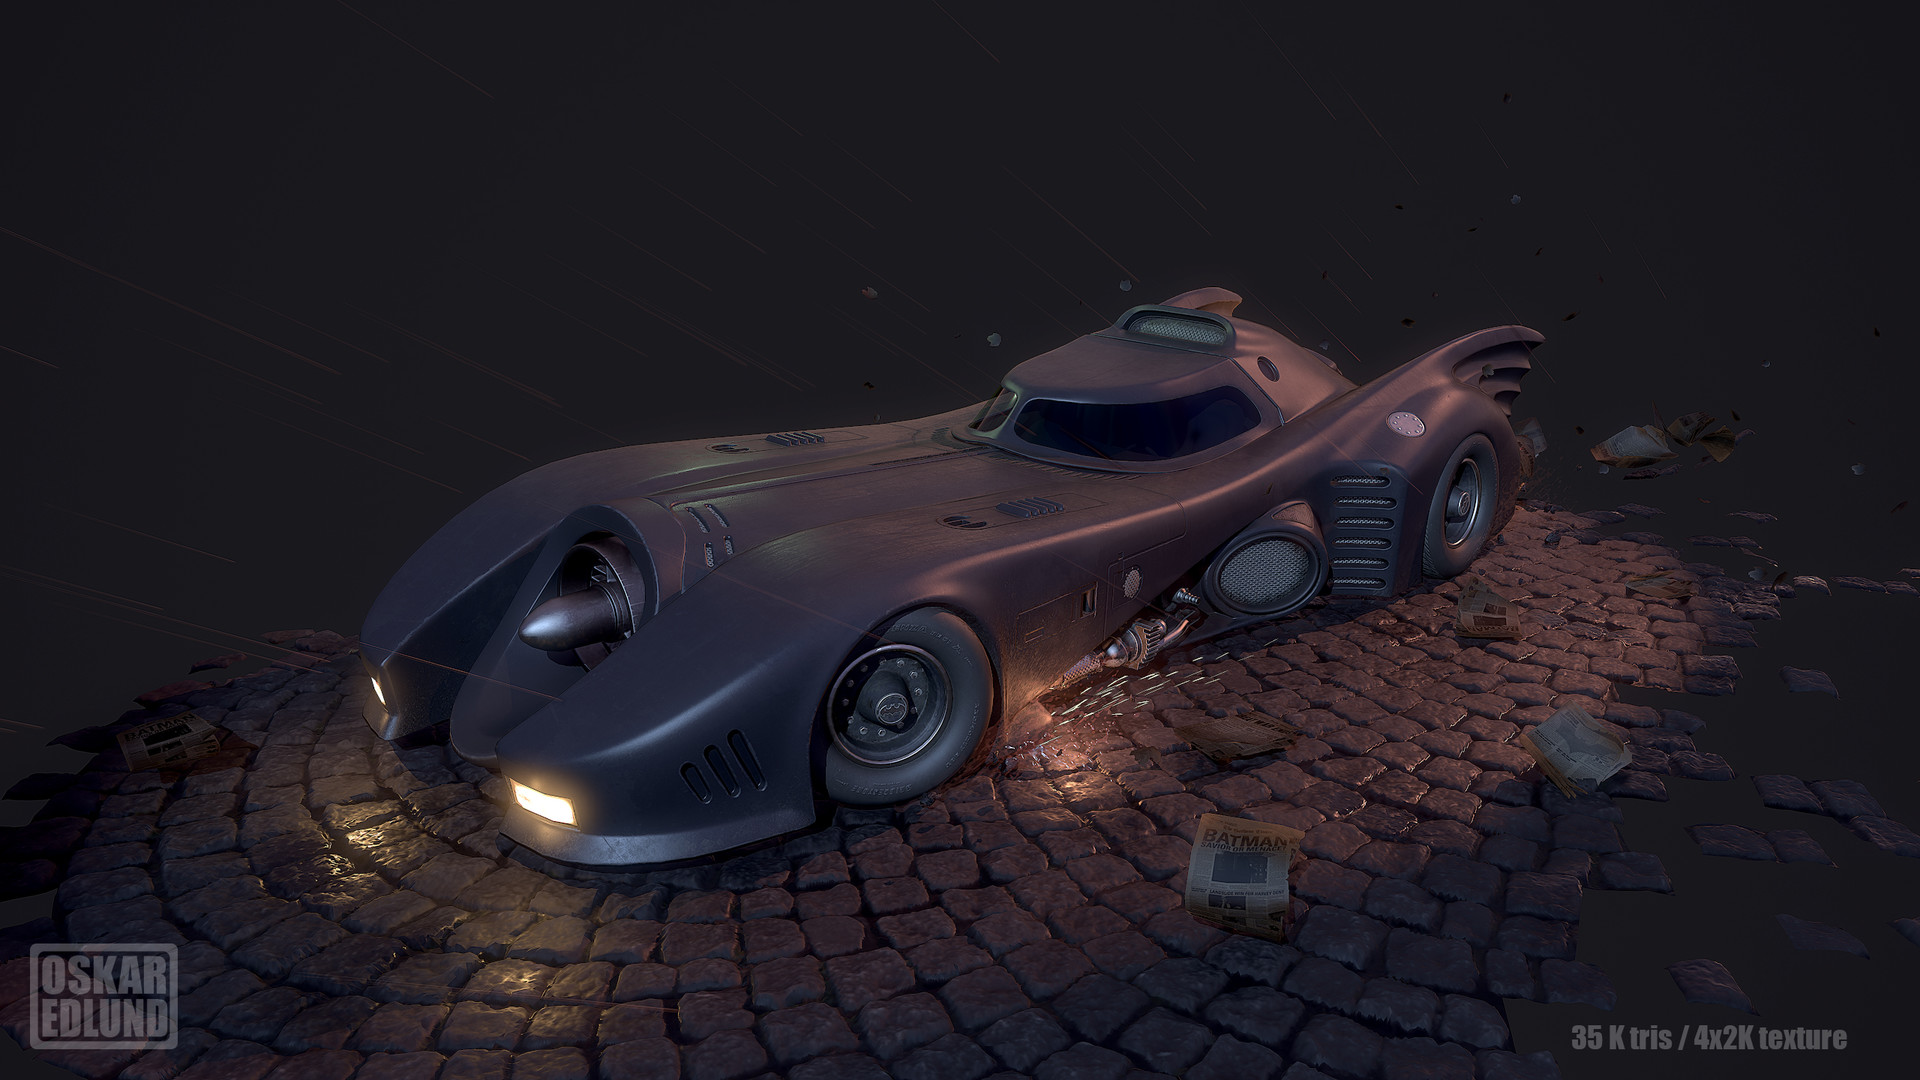 Oskar edlund batmobile 01